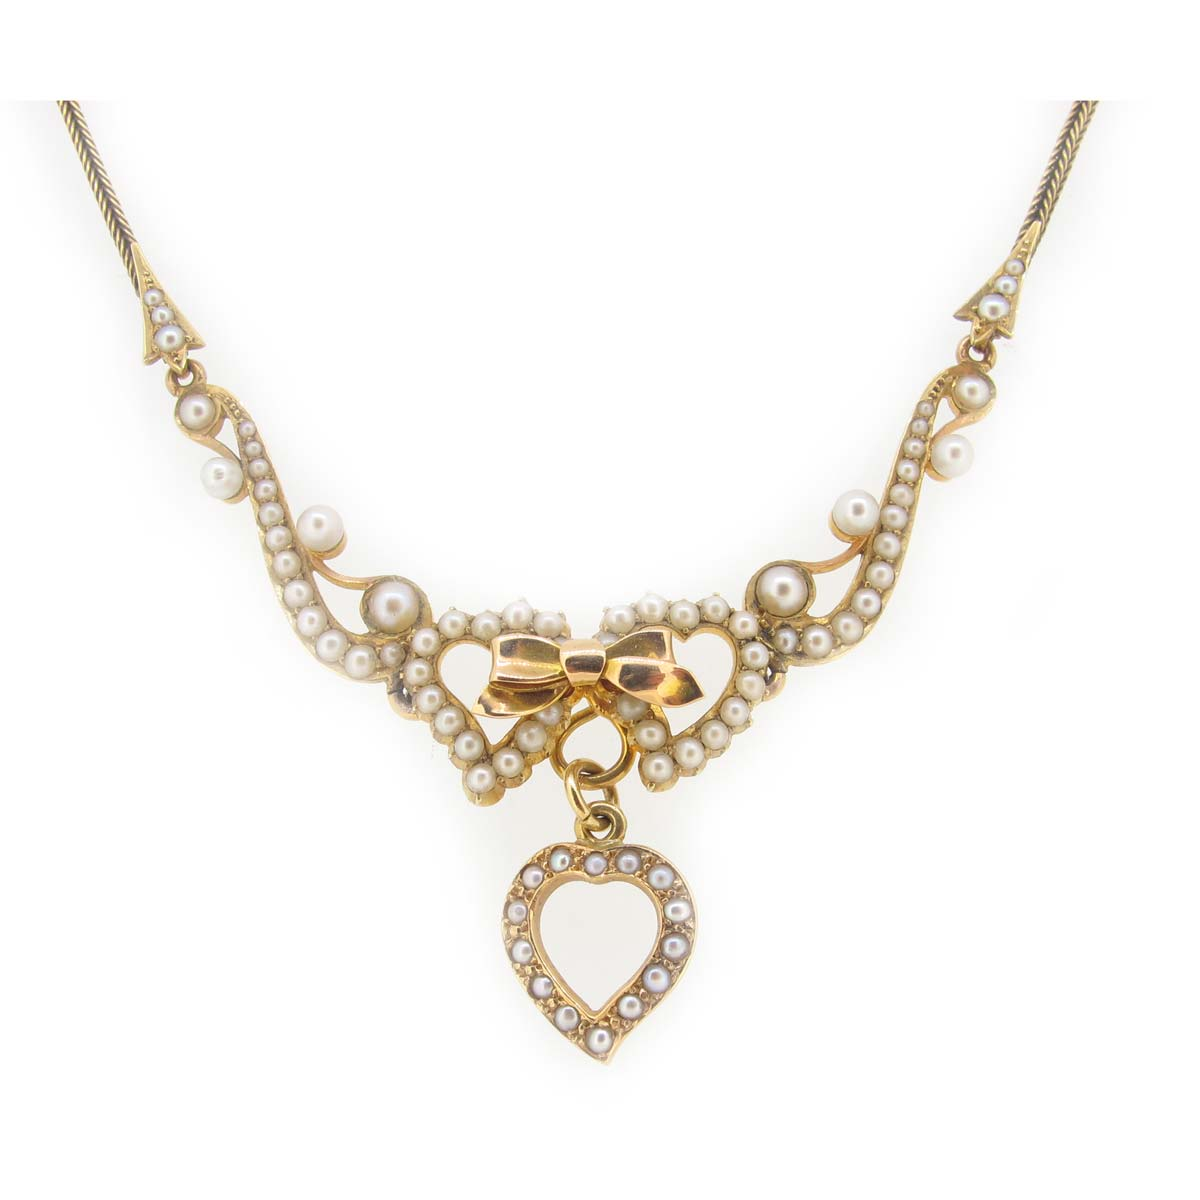 Antique gold & pearl neckalce